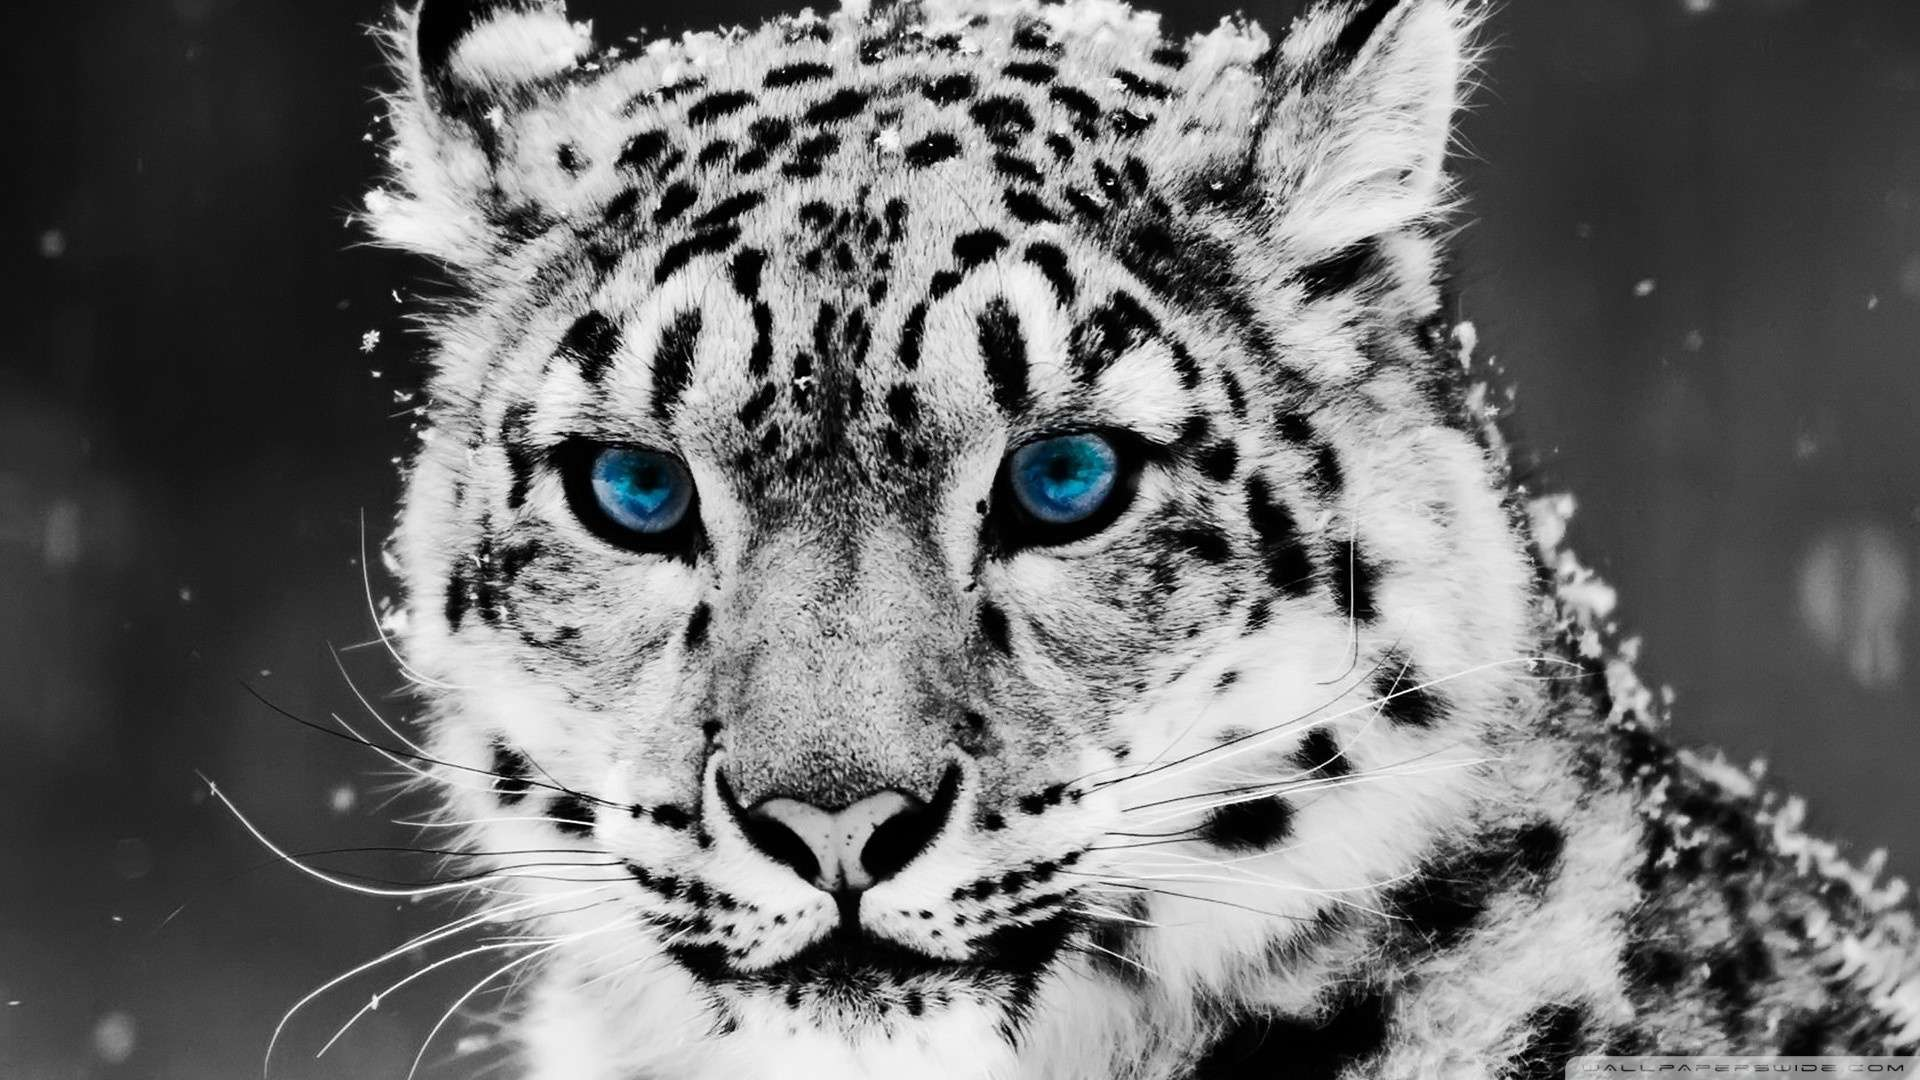 Wallpaper Snow Leopard Black And White Portrait Wallpaper 1080p HD 1920x1080